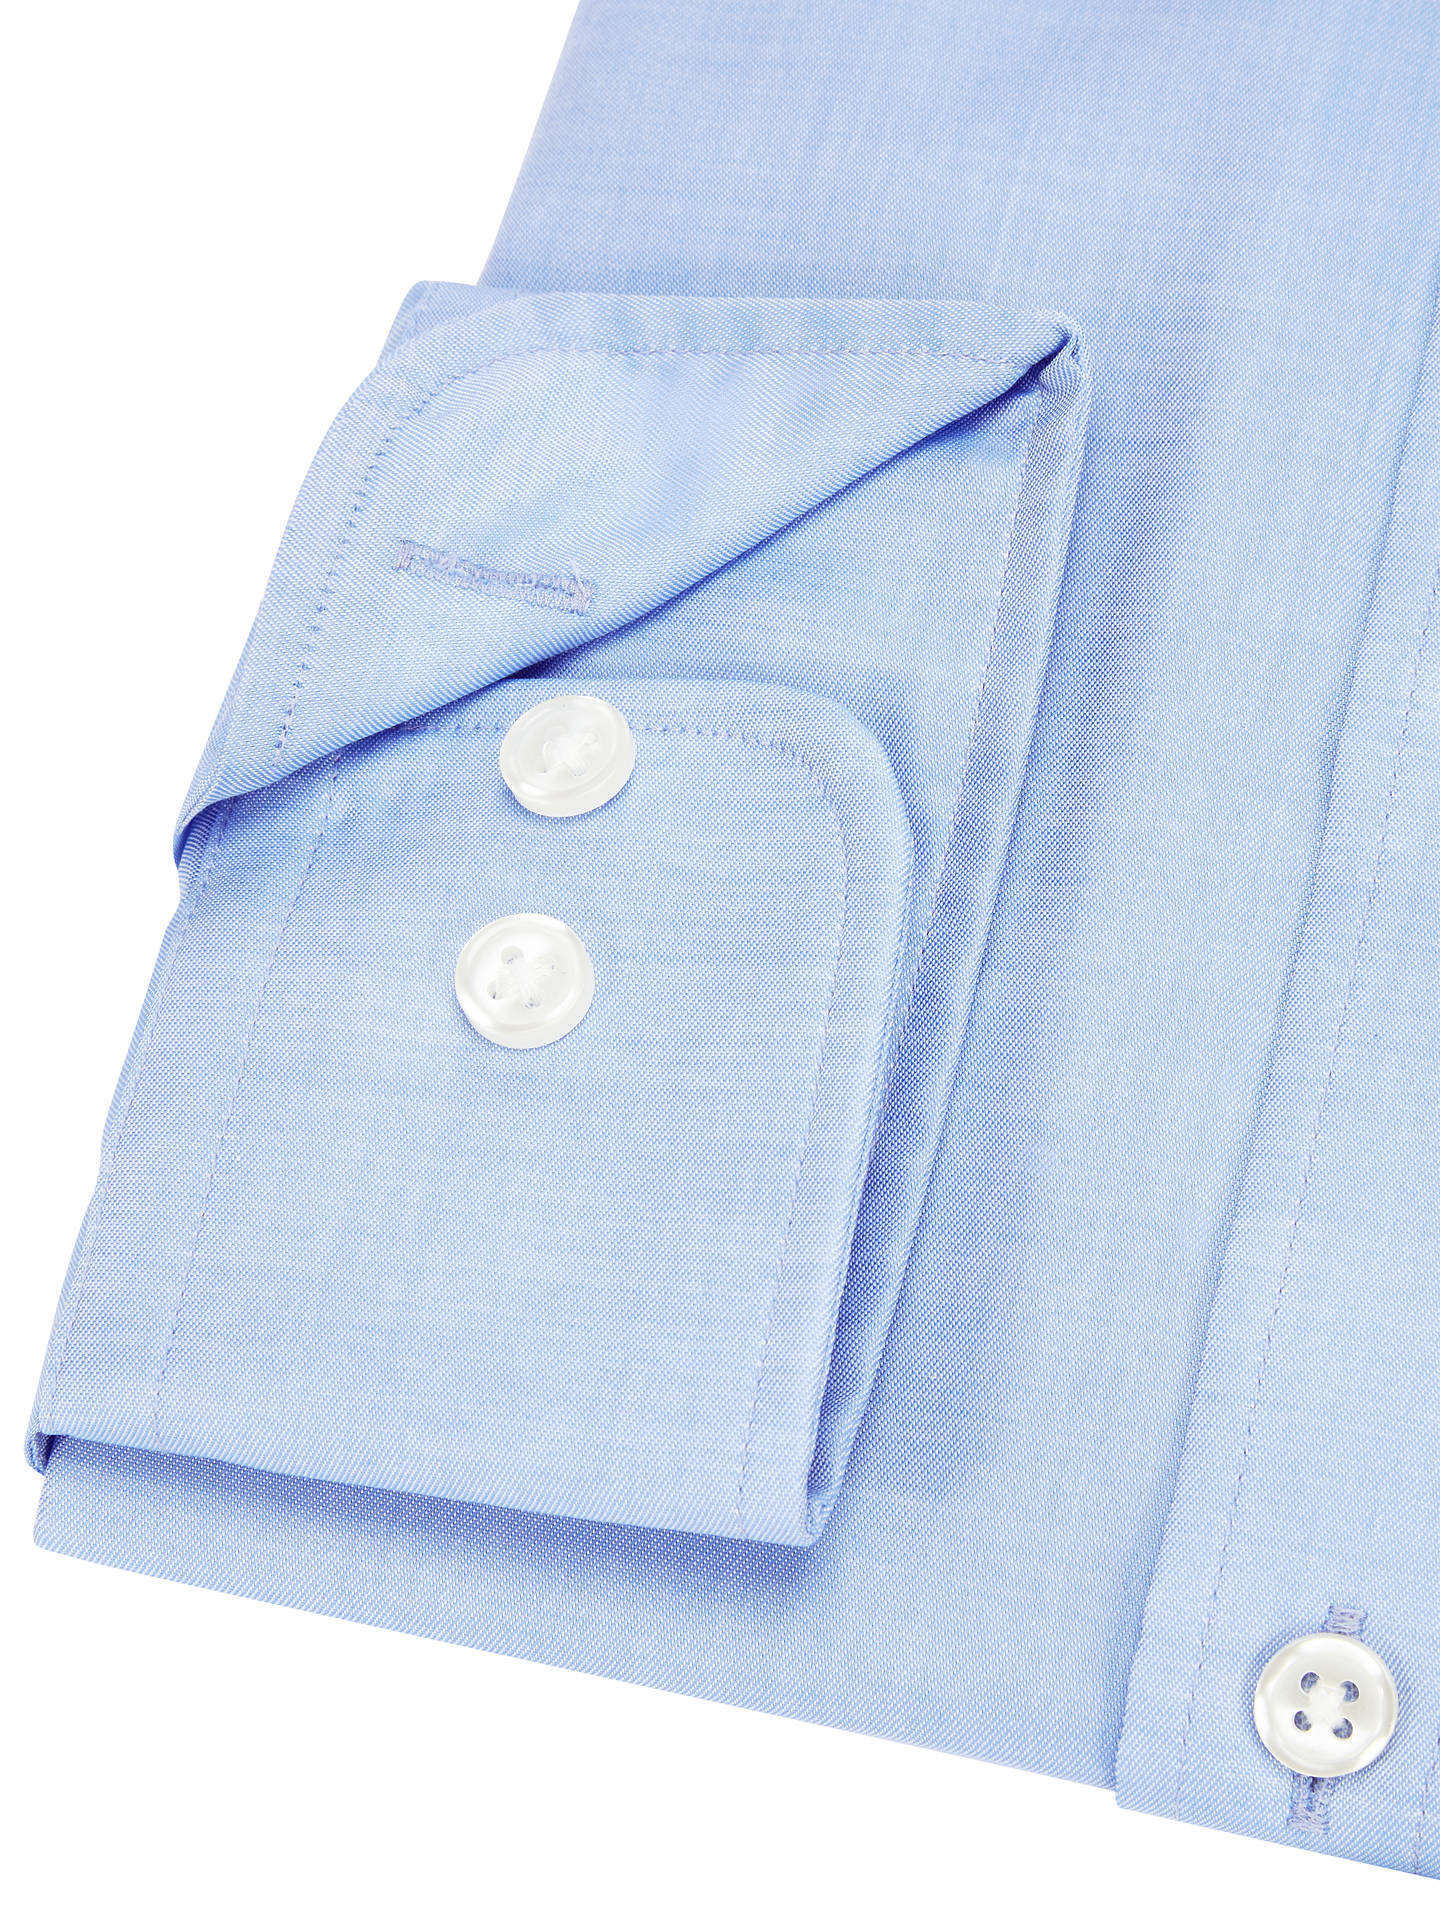 BuyJohn Lewis & Partners Non Iron Twill Tailored Fit Shirt, Blue, 15 Online at johnlewis.com